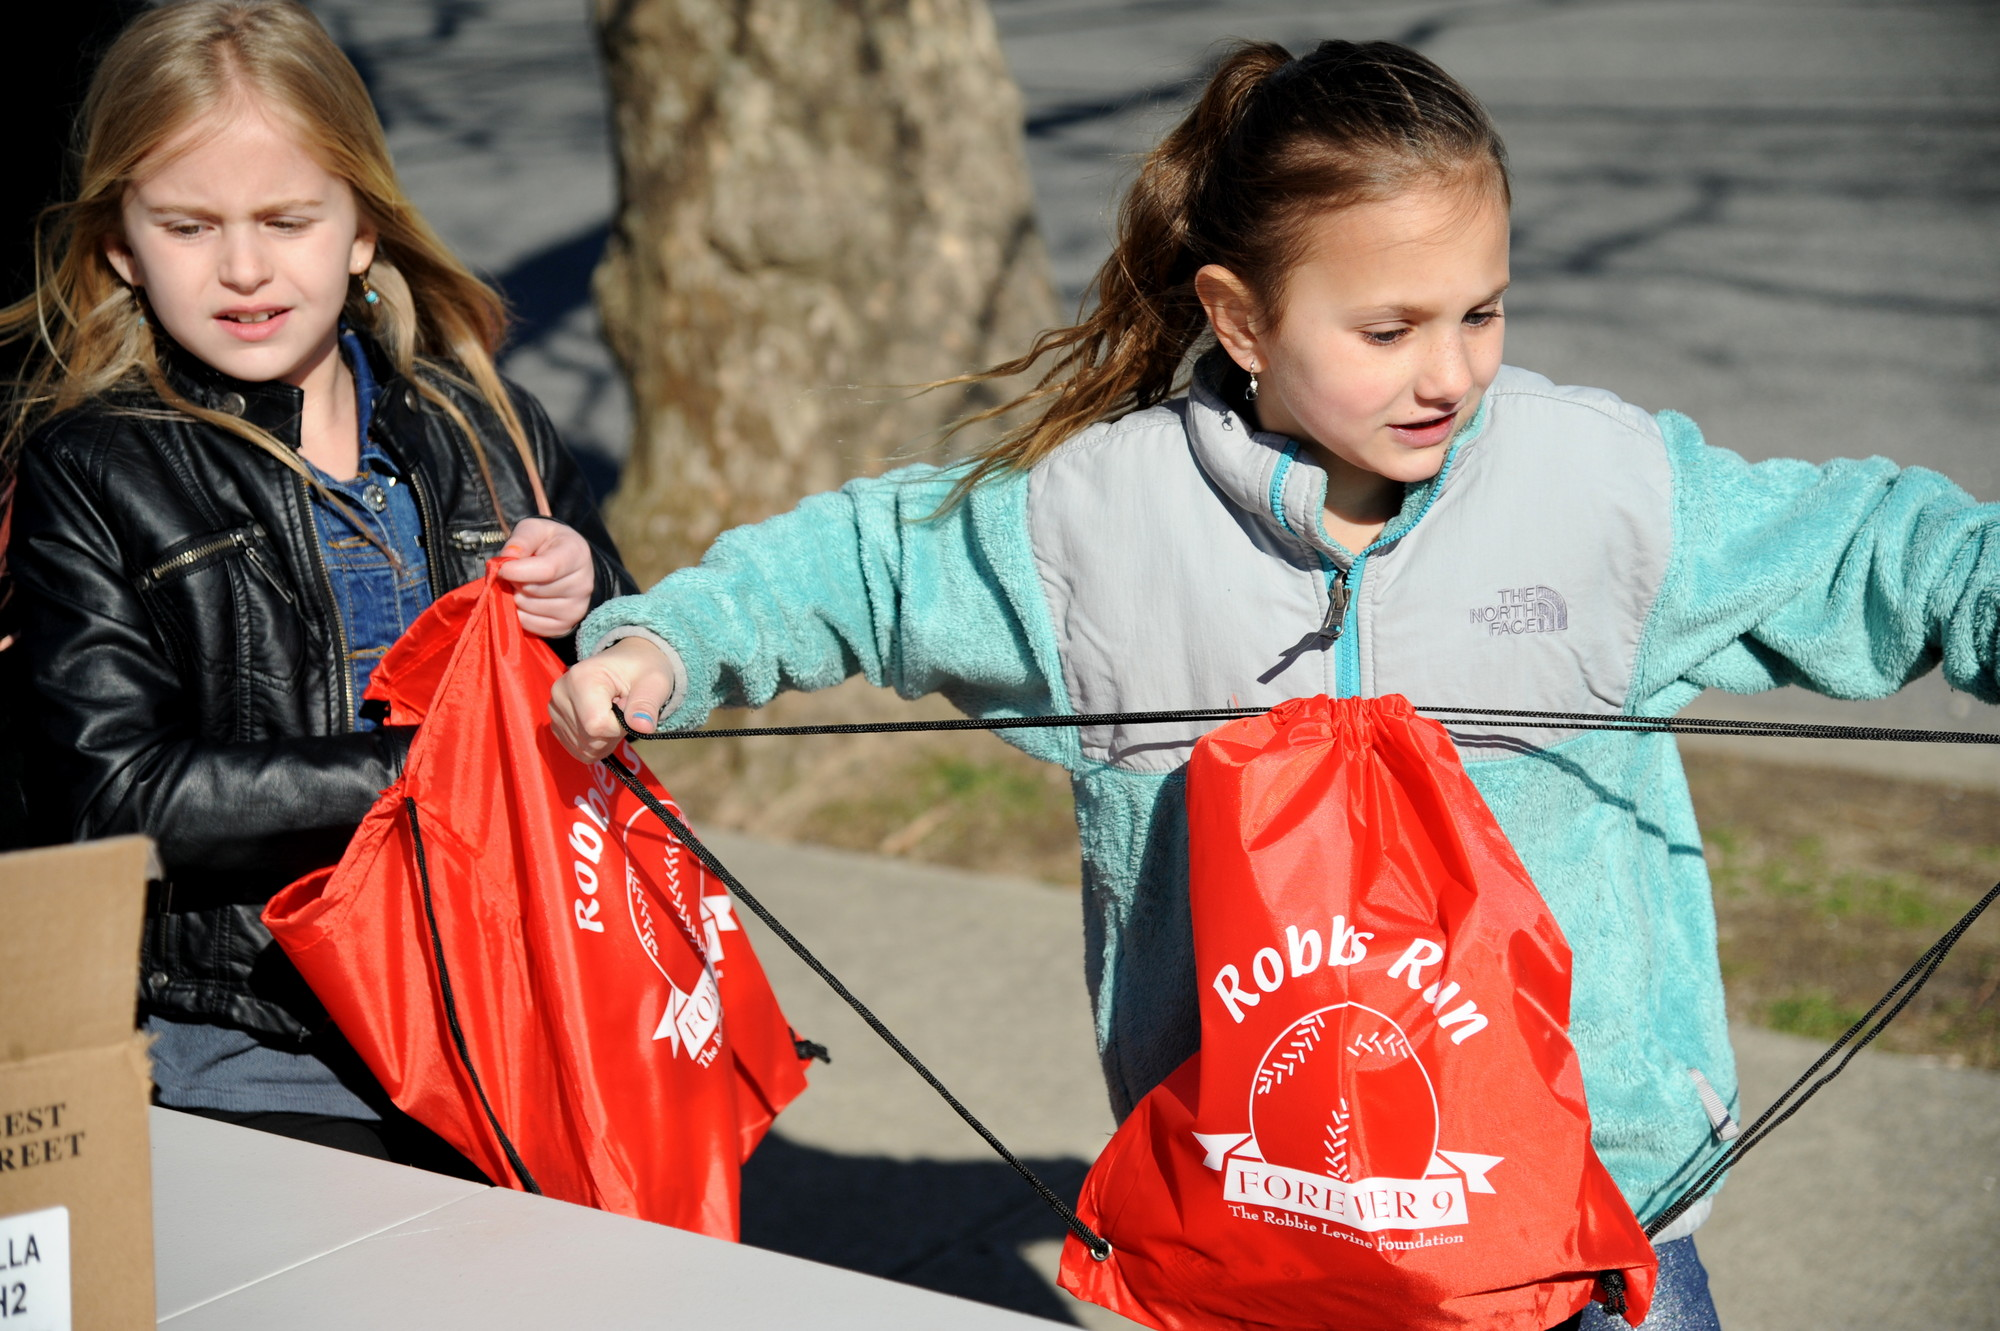 Ally Greenberg, 7, and Eden Rothstein, 7, from left, helped pack bags in preparation for the upcoming Robbie's Run on Sunday, April 28.